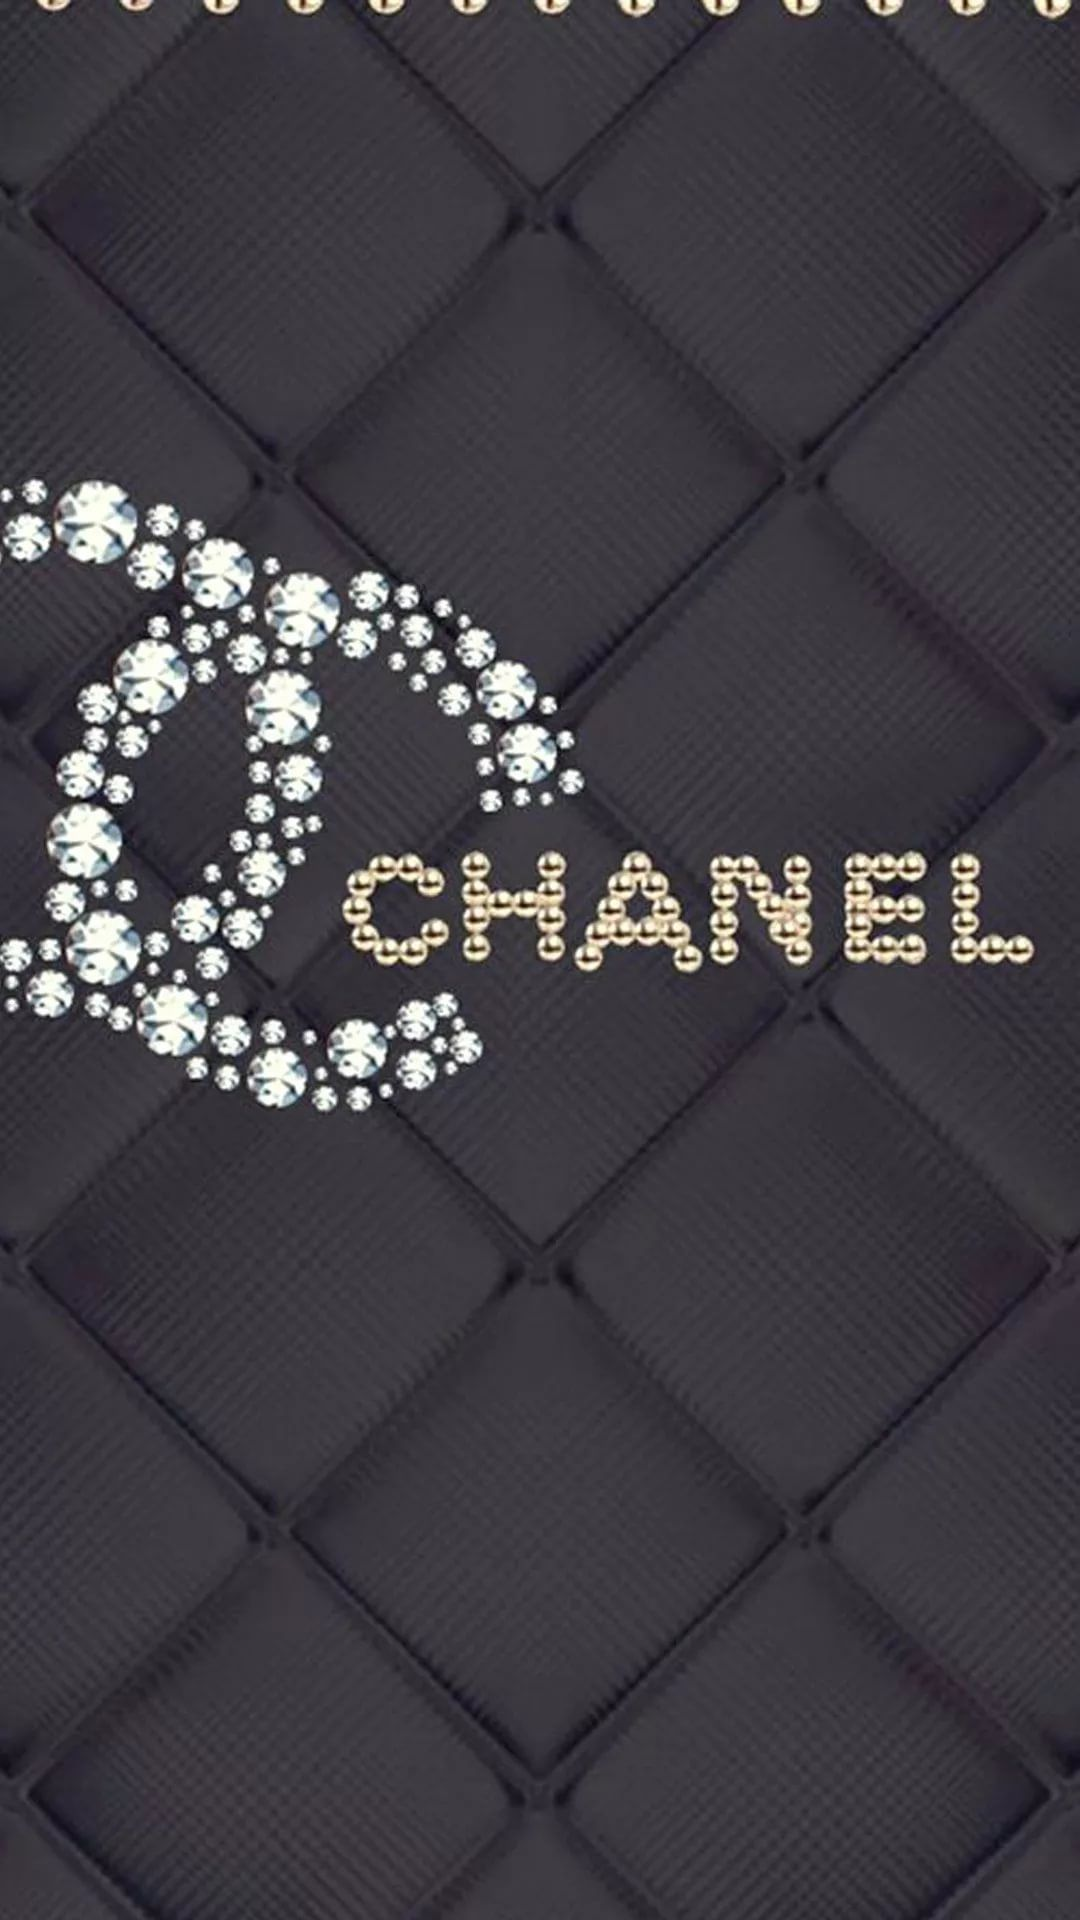 Chanel Background iPhone hd wallpaper